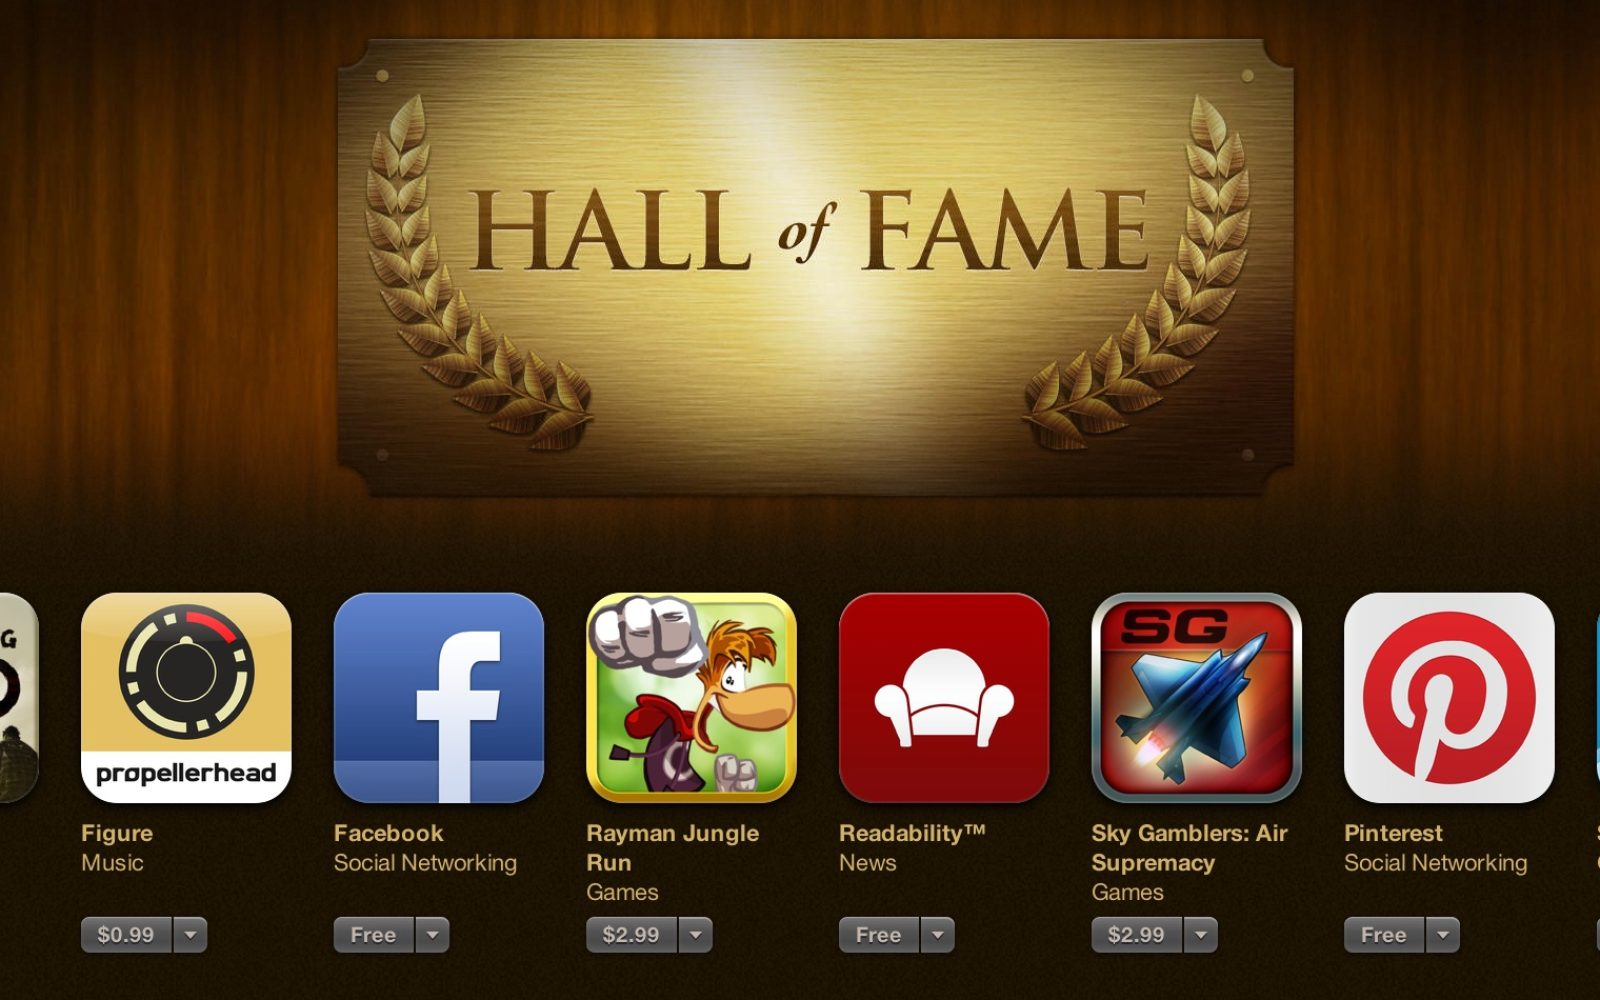 Orbitz, Pinterest, Sky Gamblers, Foursquare and others added